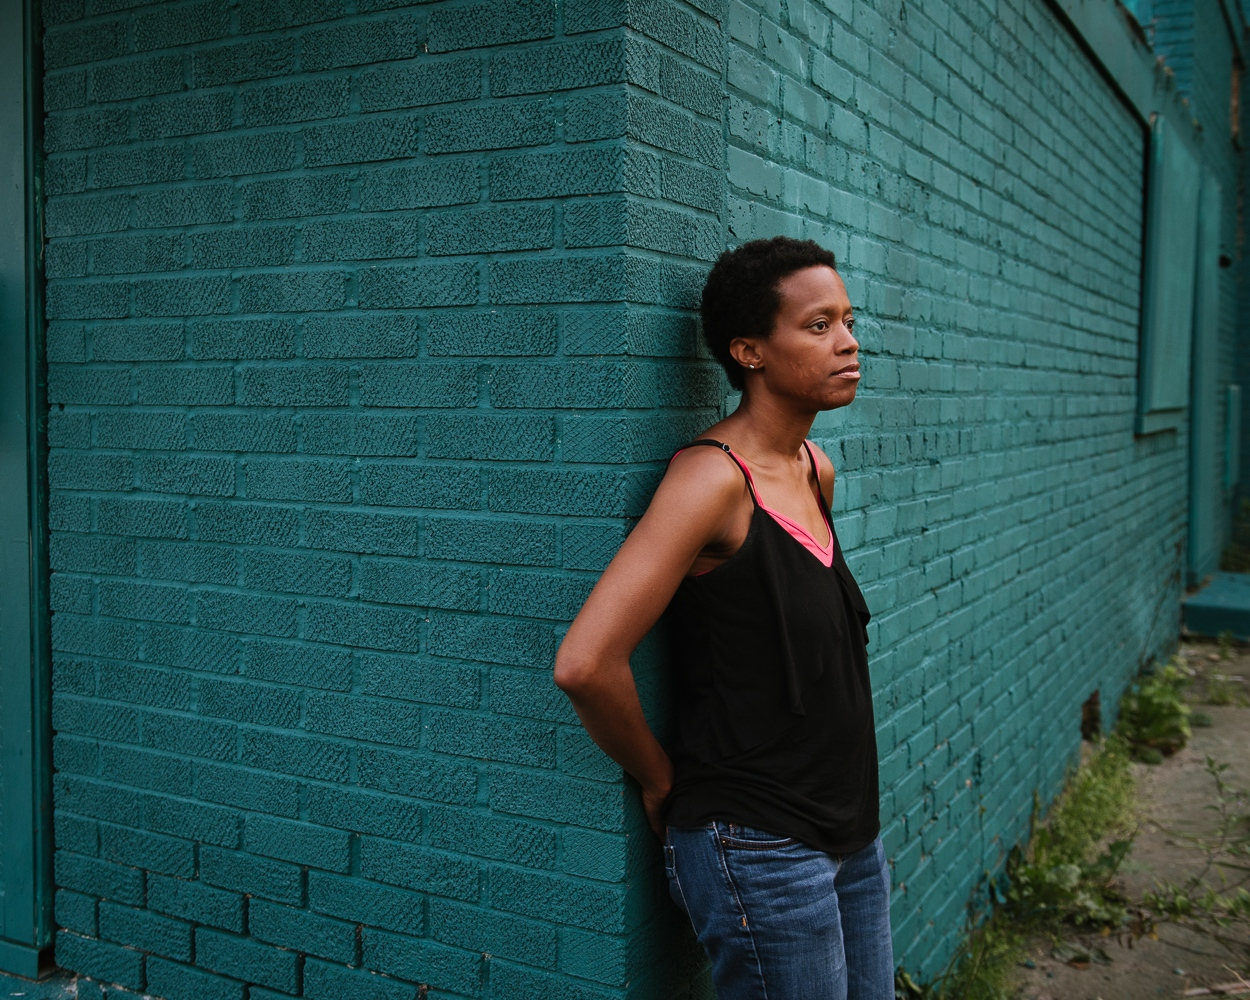 Amanda Williams is a Chicago-based artist who explores cultural identity and the politics of race and urban space through her collaborative projects, public installations, painting, and photography. I photographed her in South Side, Chicago, with a house she painted and named Newport 100s . She's been taking abandoned houses on vacant lots and sheathed them in solid colors reminiscent of the black experience in what remains a fragmented city.